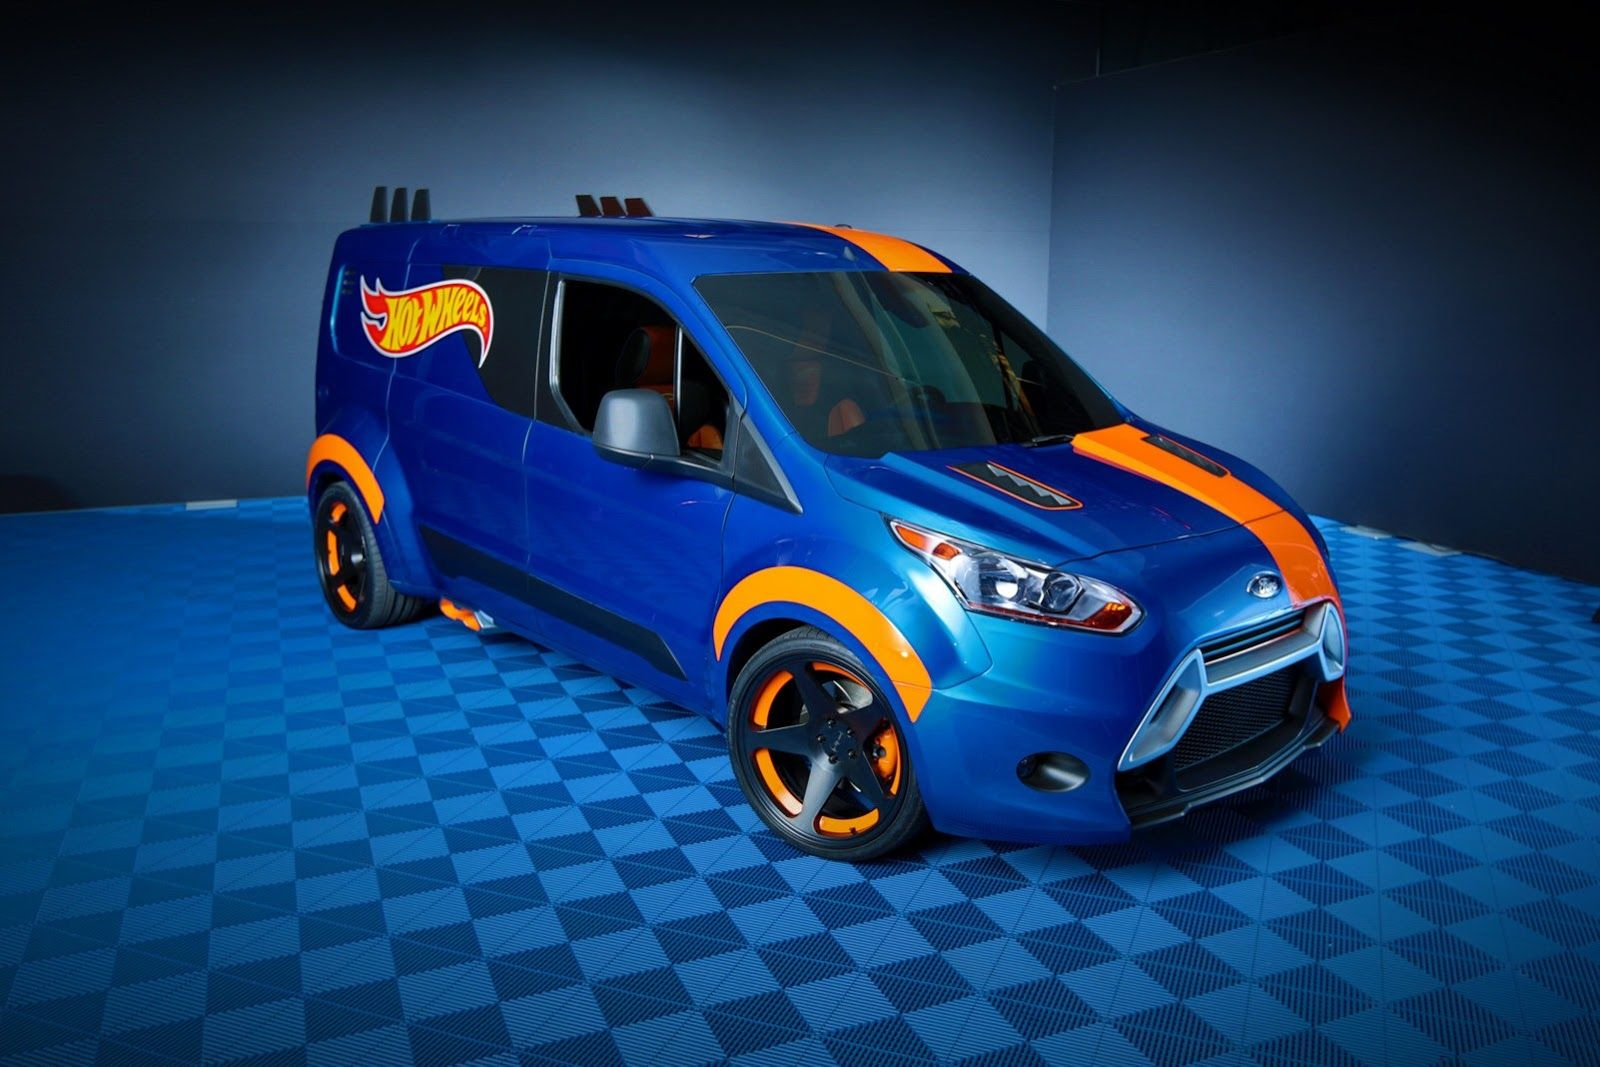 Ford & Fordu0027s Transit Connect Hot Wheels Concept Looks Boyishly Cool ... markmcfarlin.com